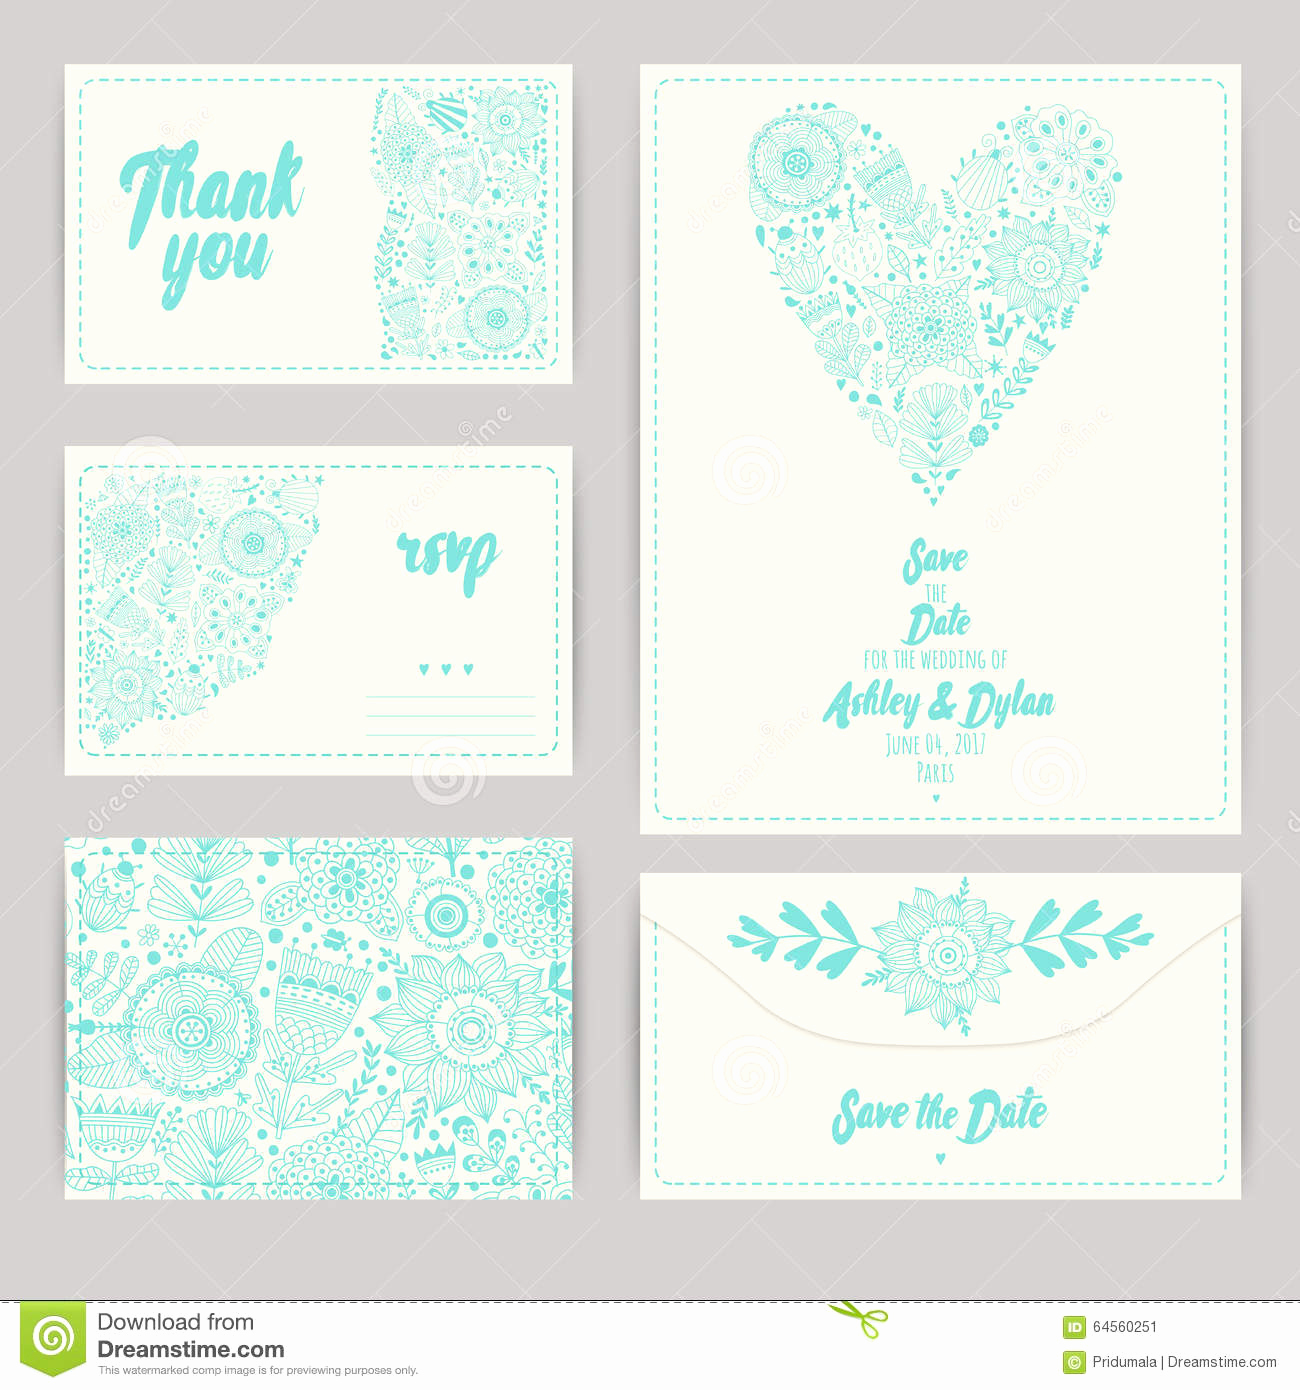 Wedding Invitation Envelope Templates New Wedding Invitation Envelope Templates